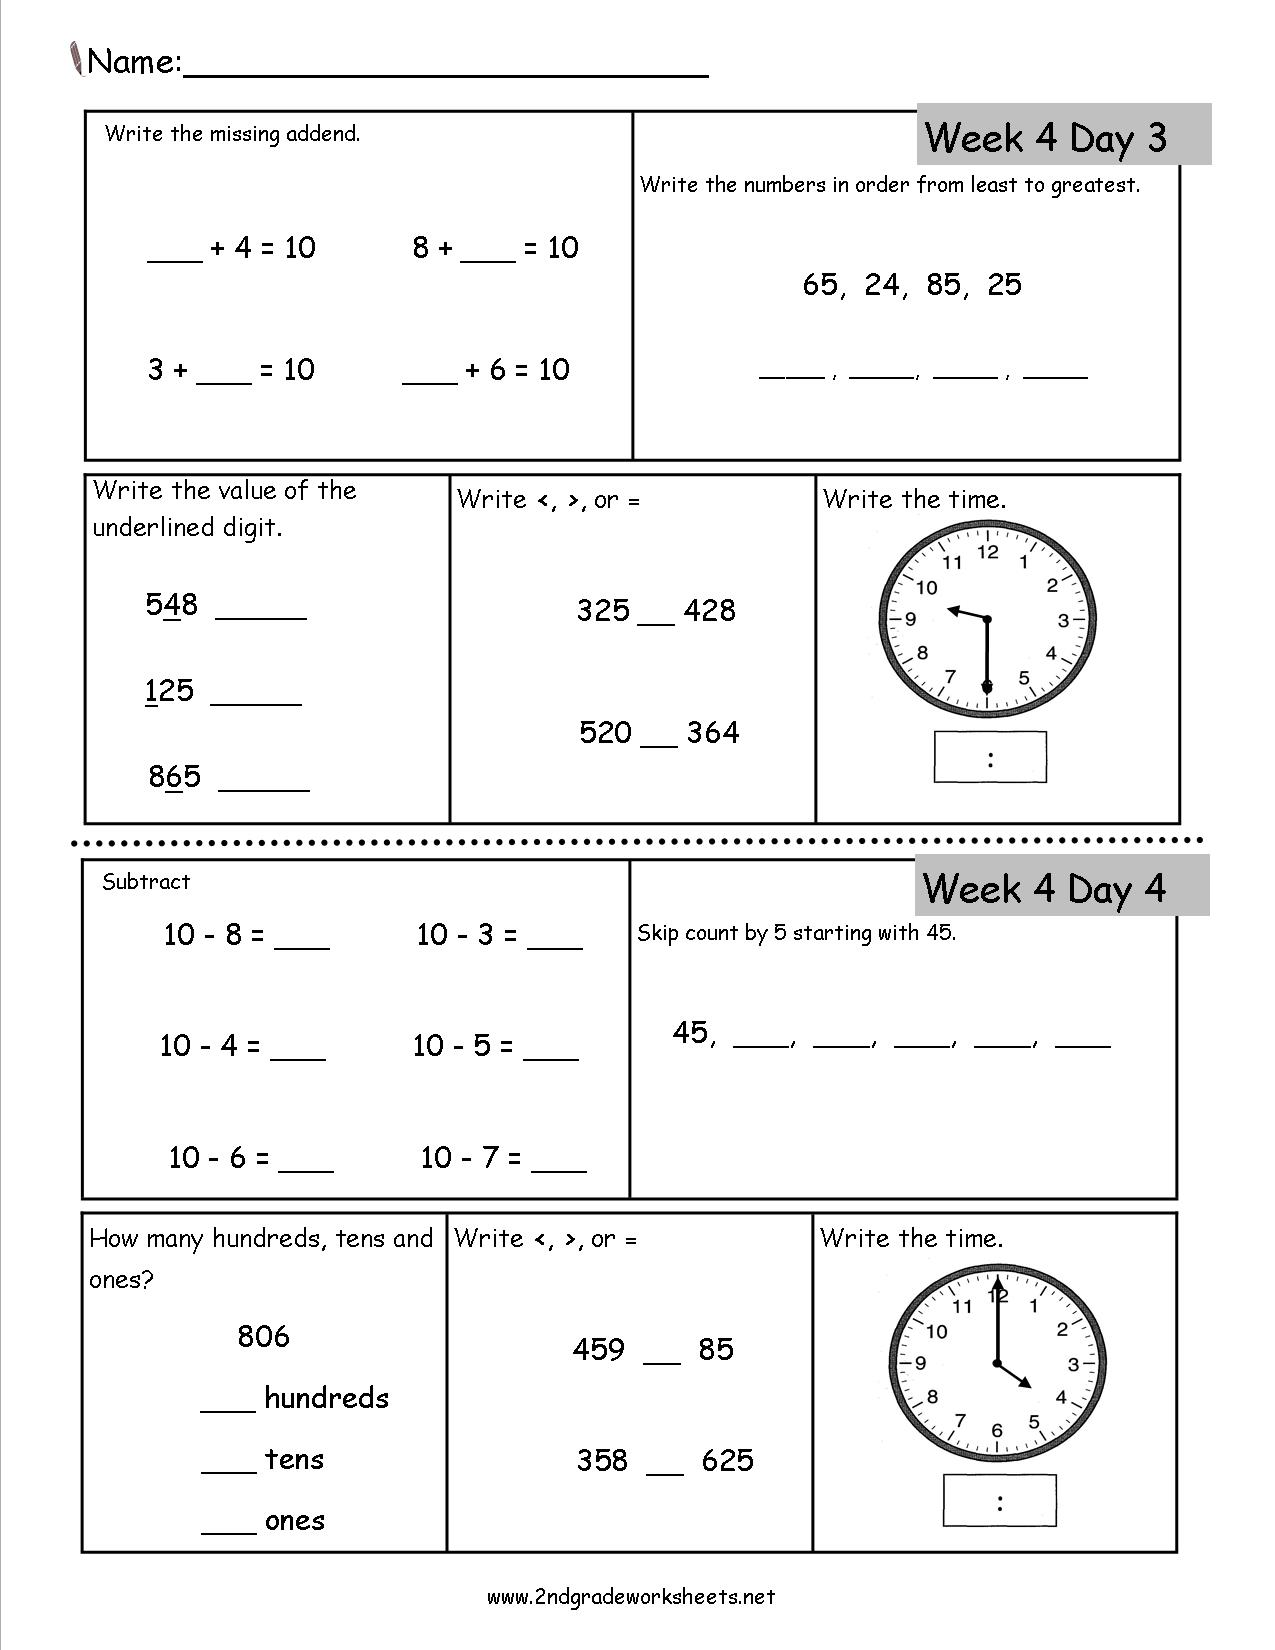 13 Best Images Of Printable Music Worksheets